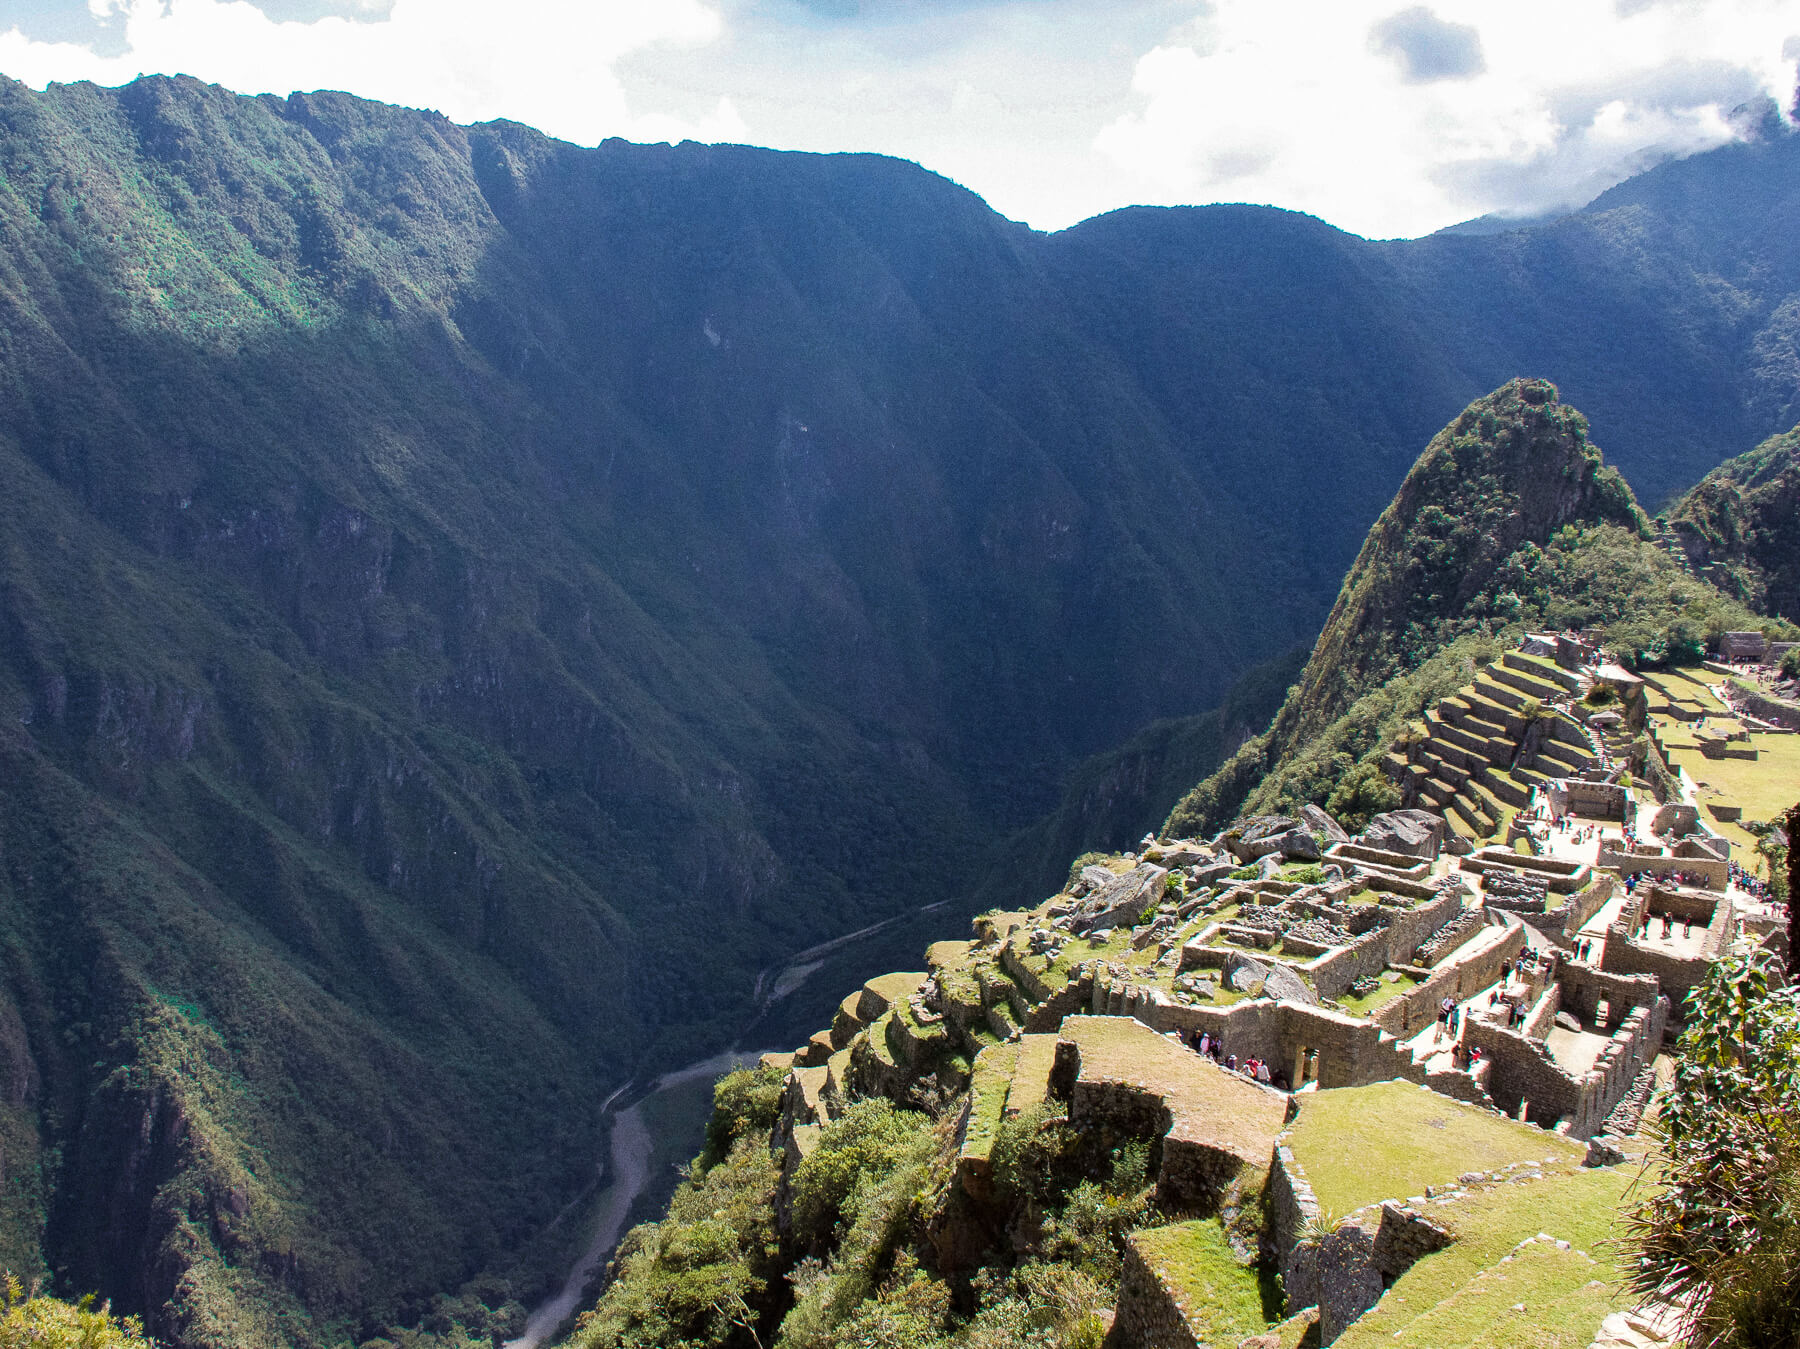 Machu Picchu at the side of the image with a huge valley and river to the left